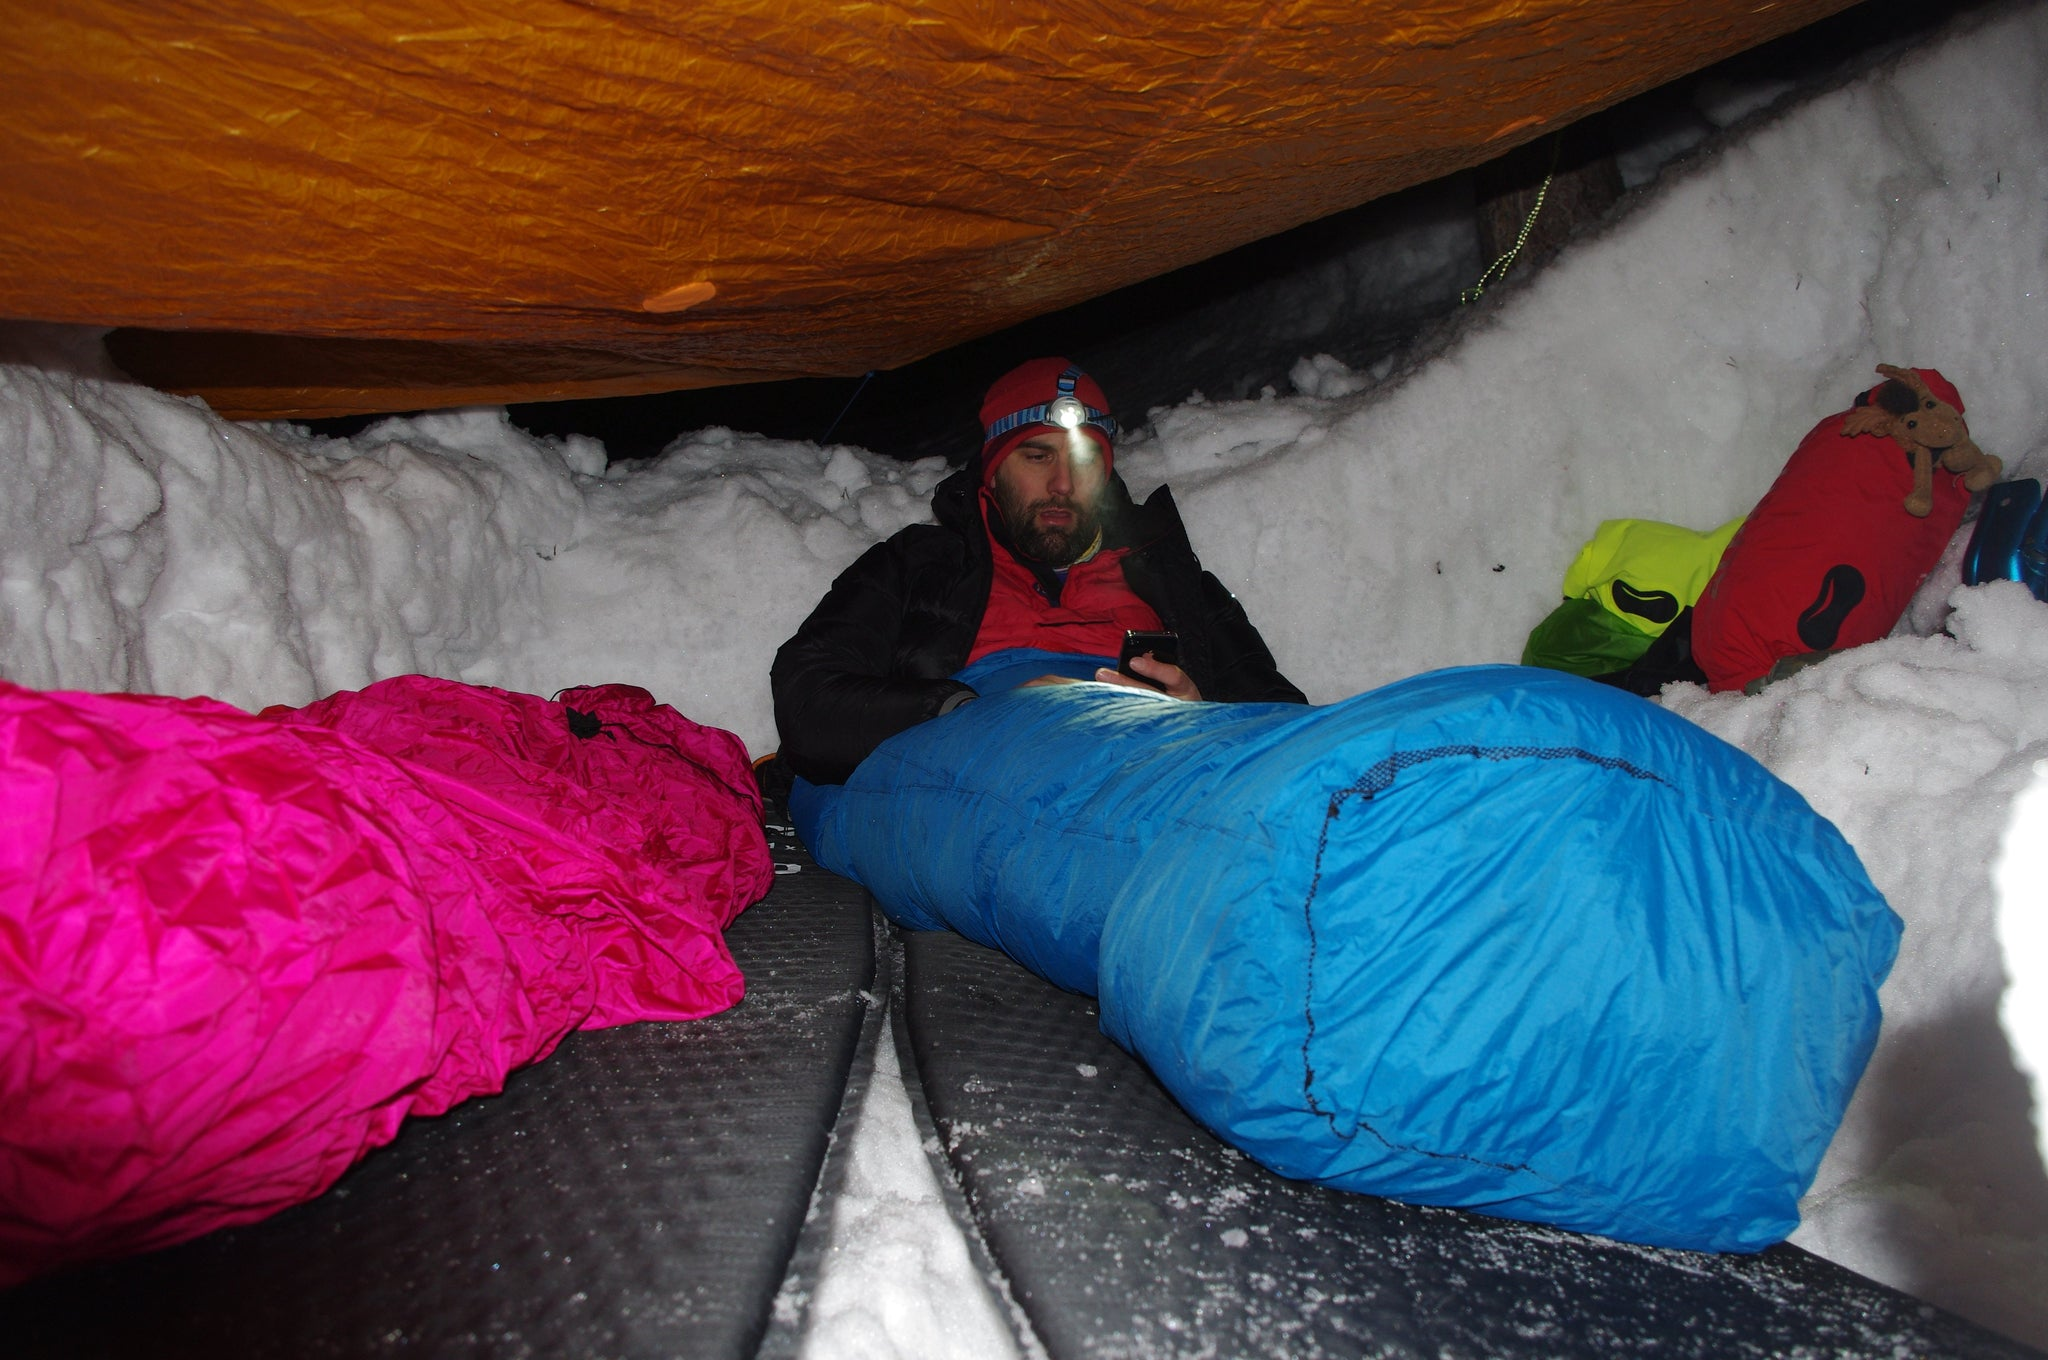 Winter camping and sleeping inside a snow hole